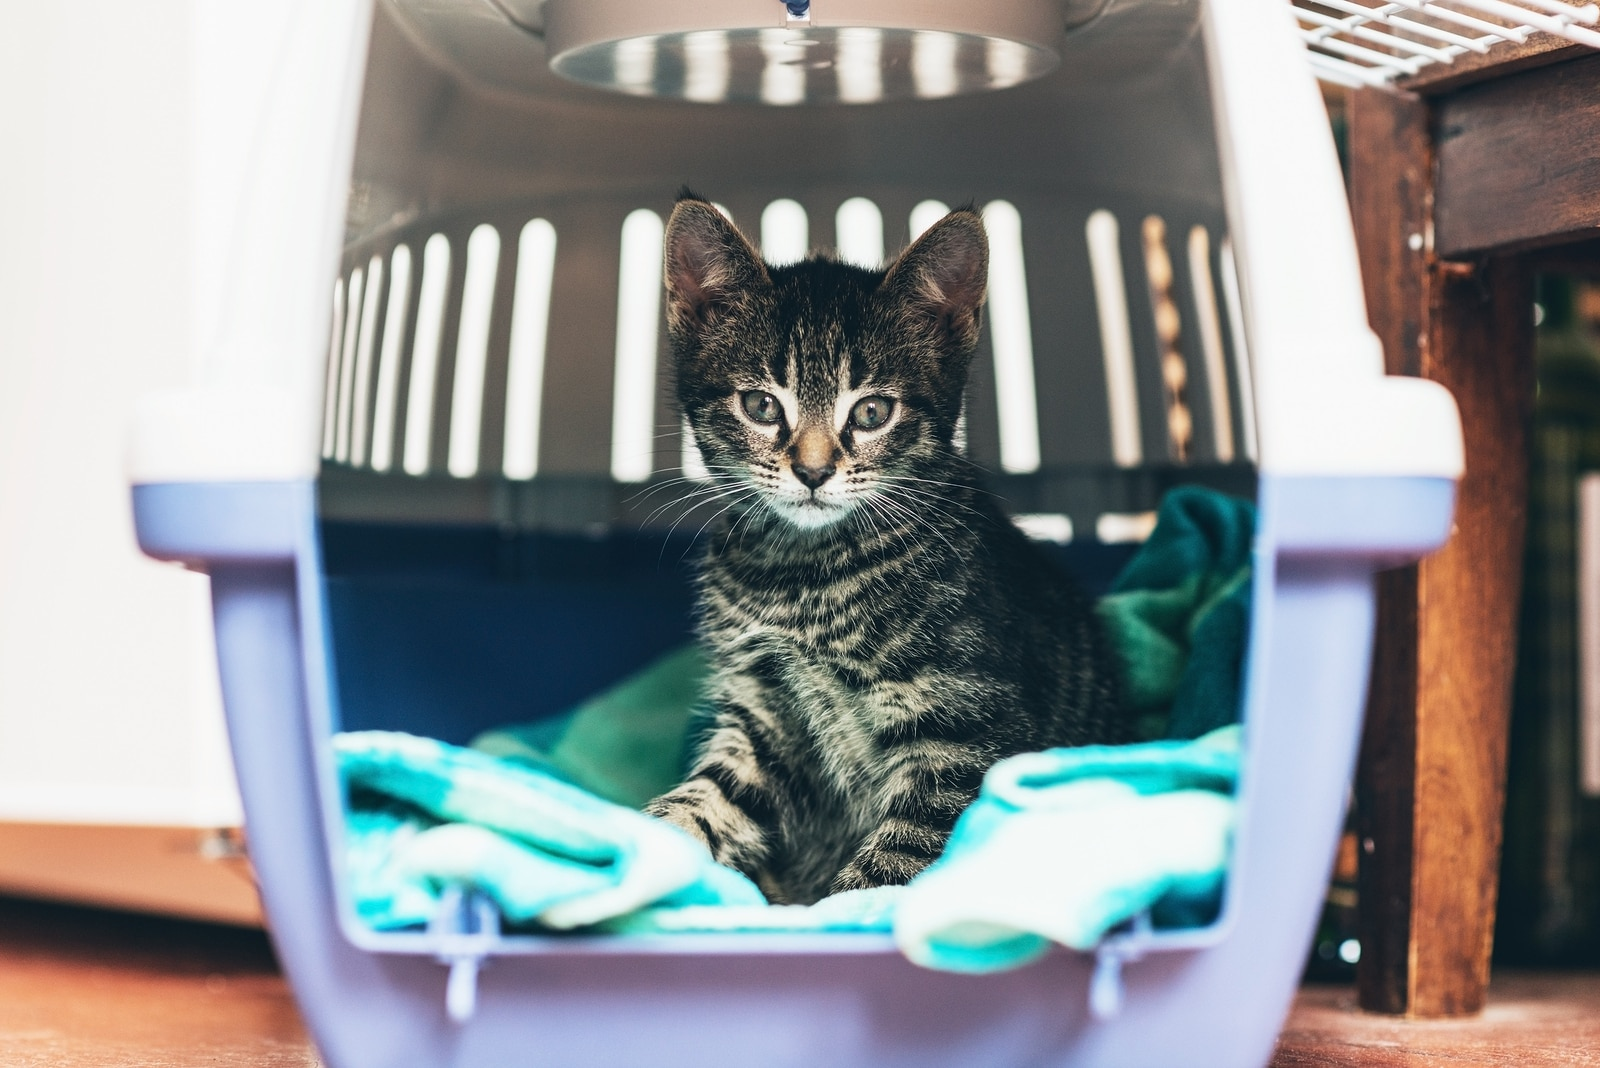 Tabby kitten sitting in a travel crate on a blue blanket staring intently with big blue eyes